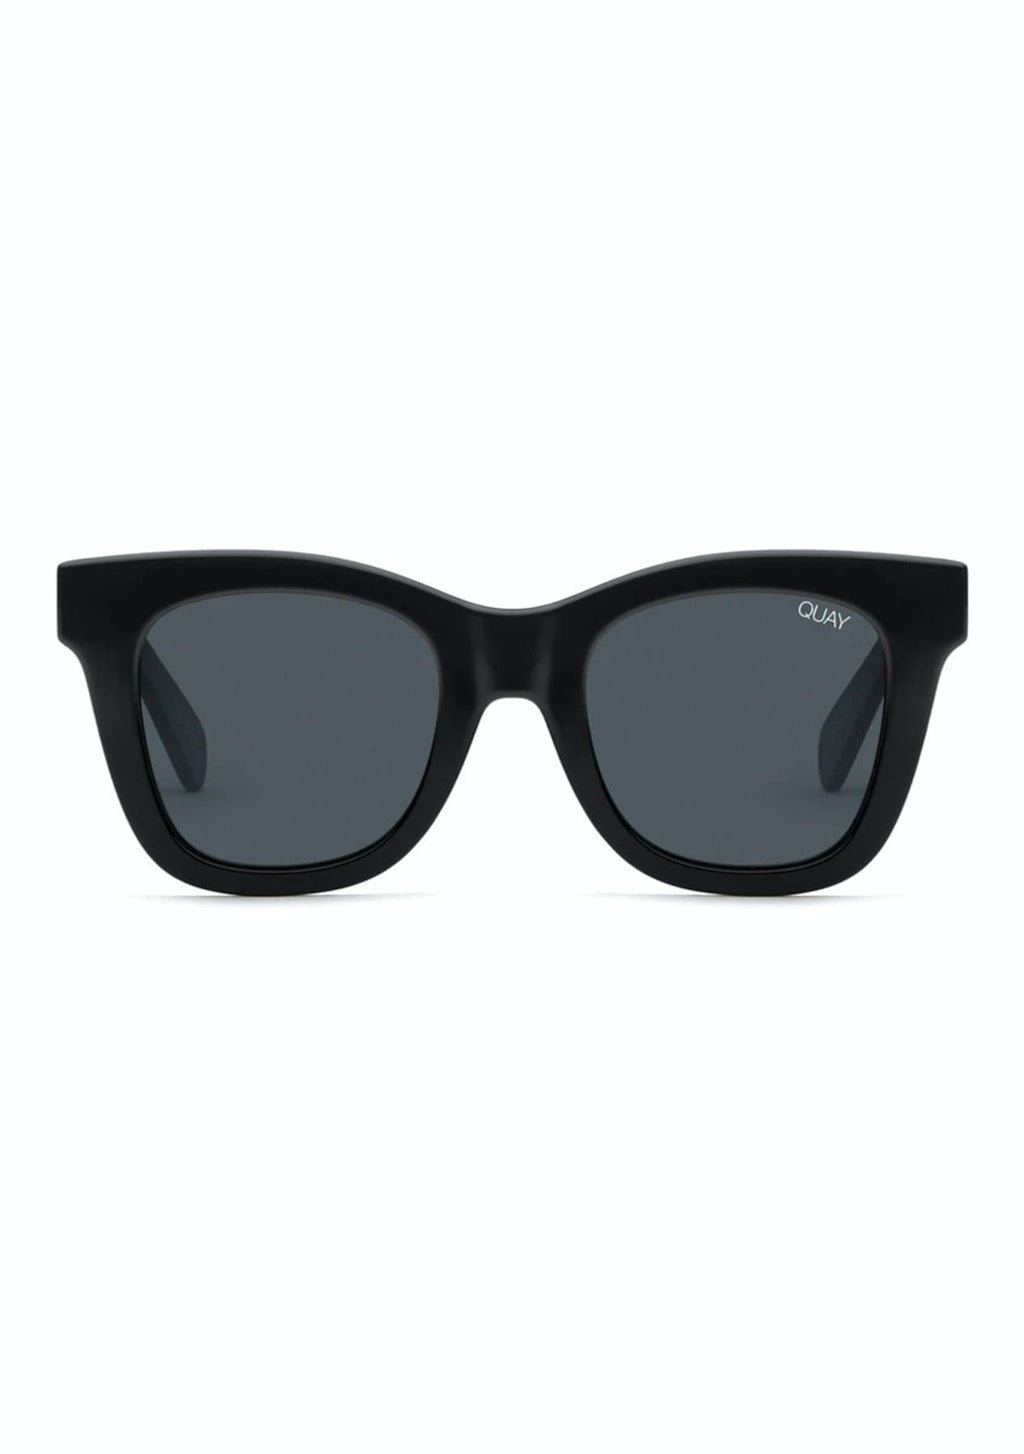 Quay Sunnies - After hours Black